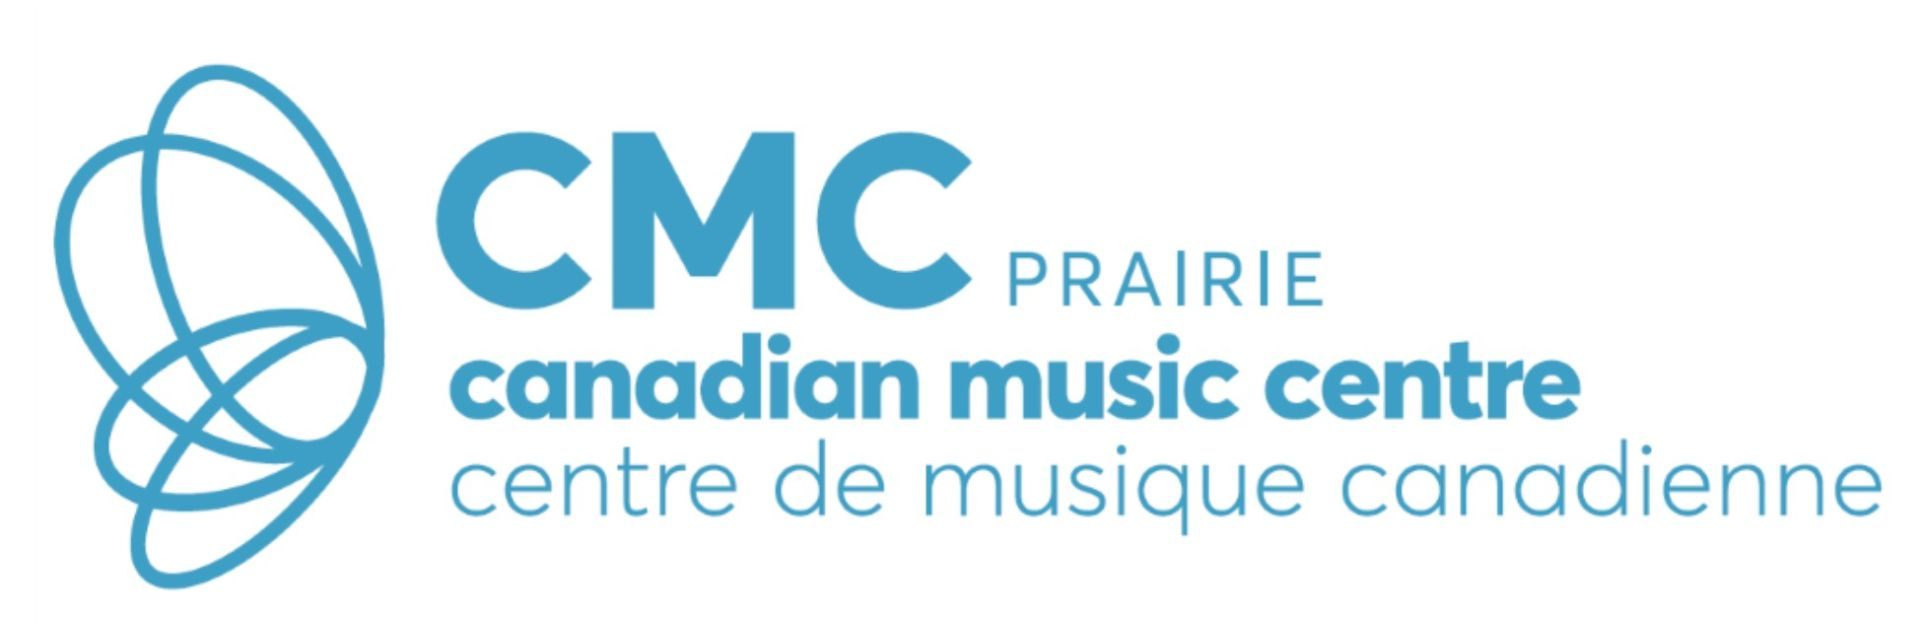 Canadian Music Centre.jpg